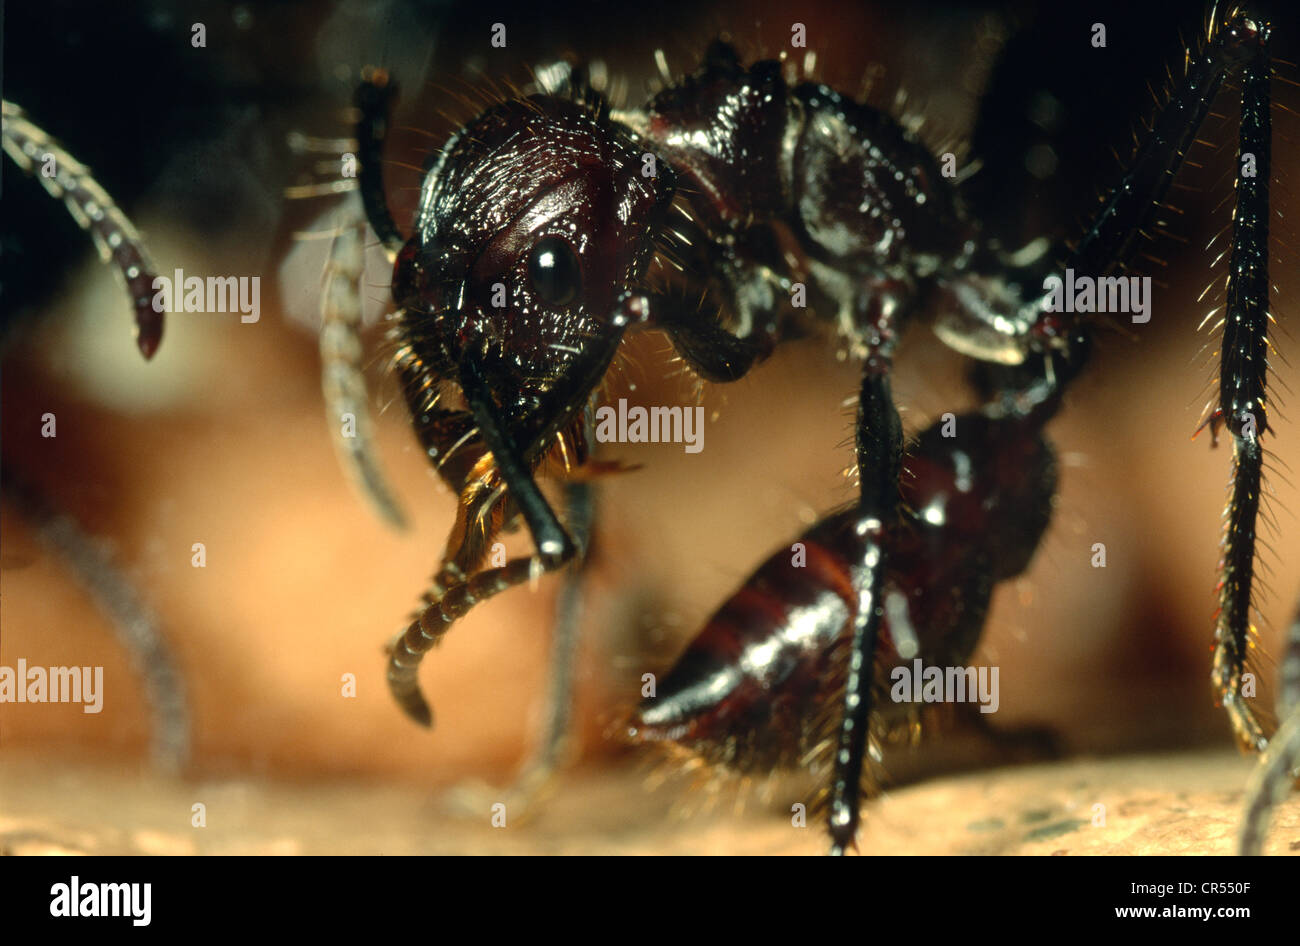 Bullet Ant, Paraponera clavata, grooming itself at the Amazon rainforest at Explorama Lodge, in Iquitos, Peru Stock Photo